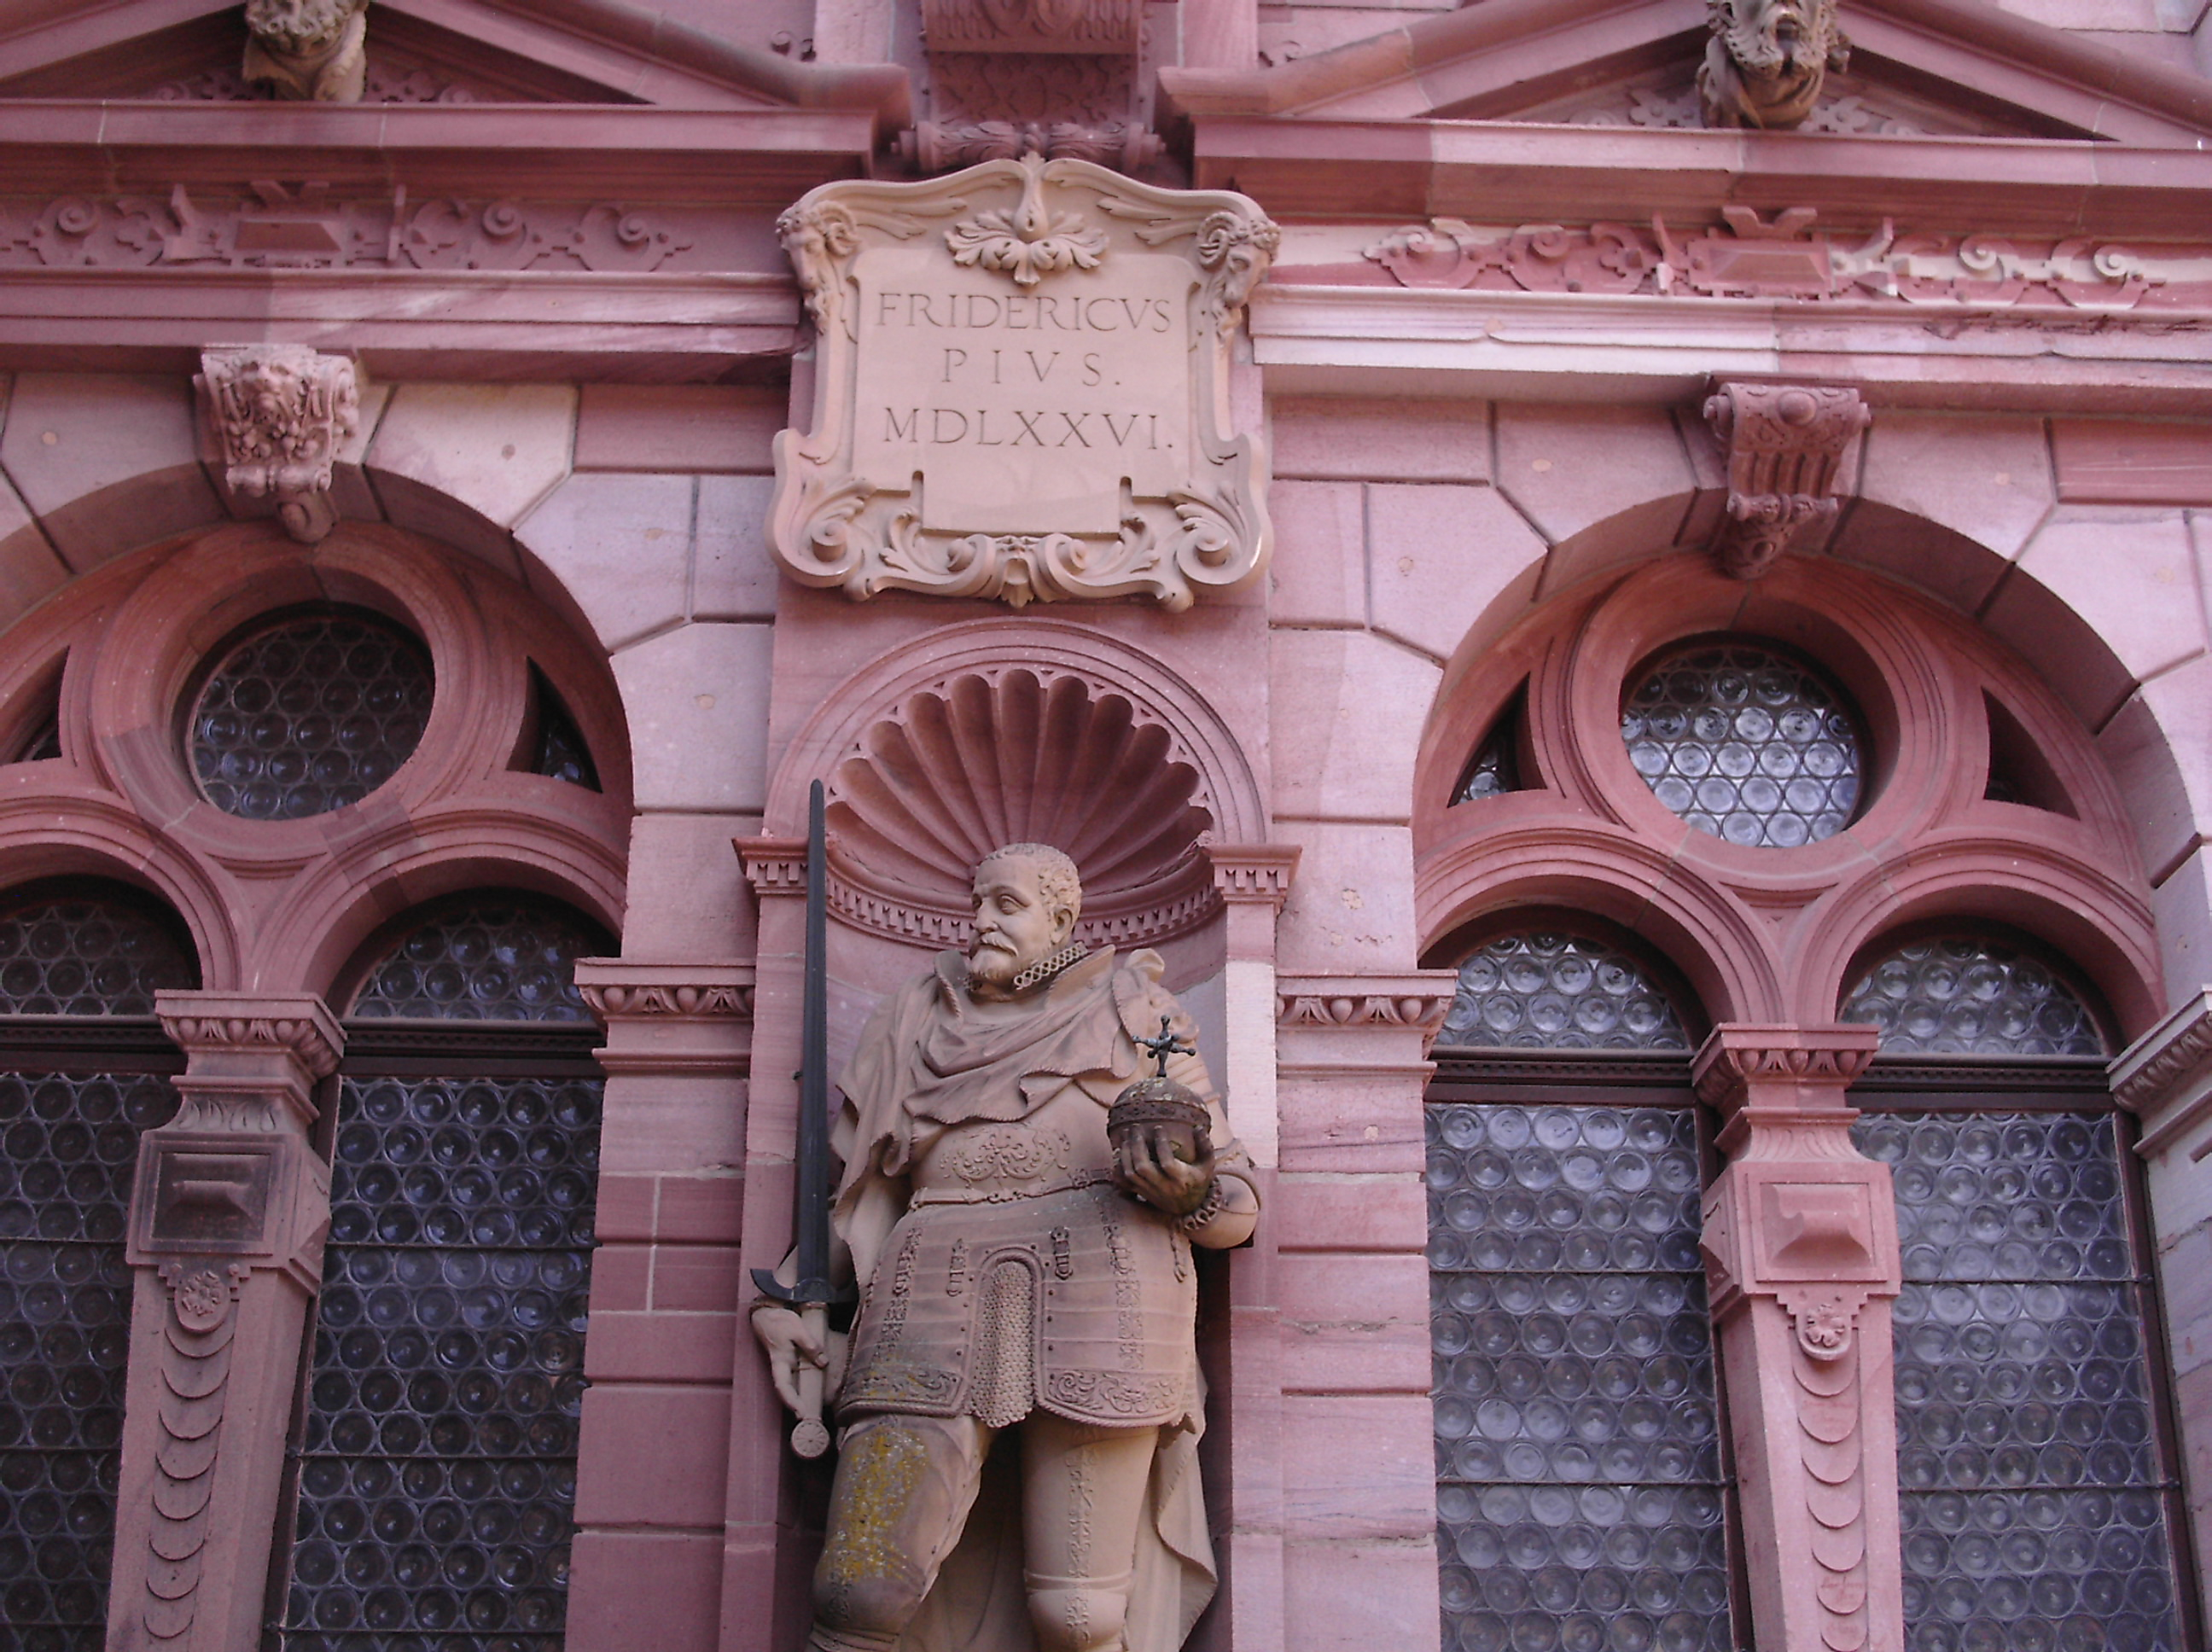 Statue of Elector Frederick III (aka Frederick the Pious) at Heidelberg Castle